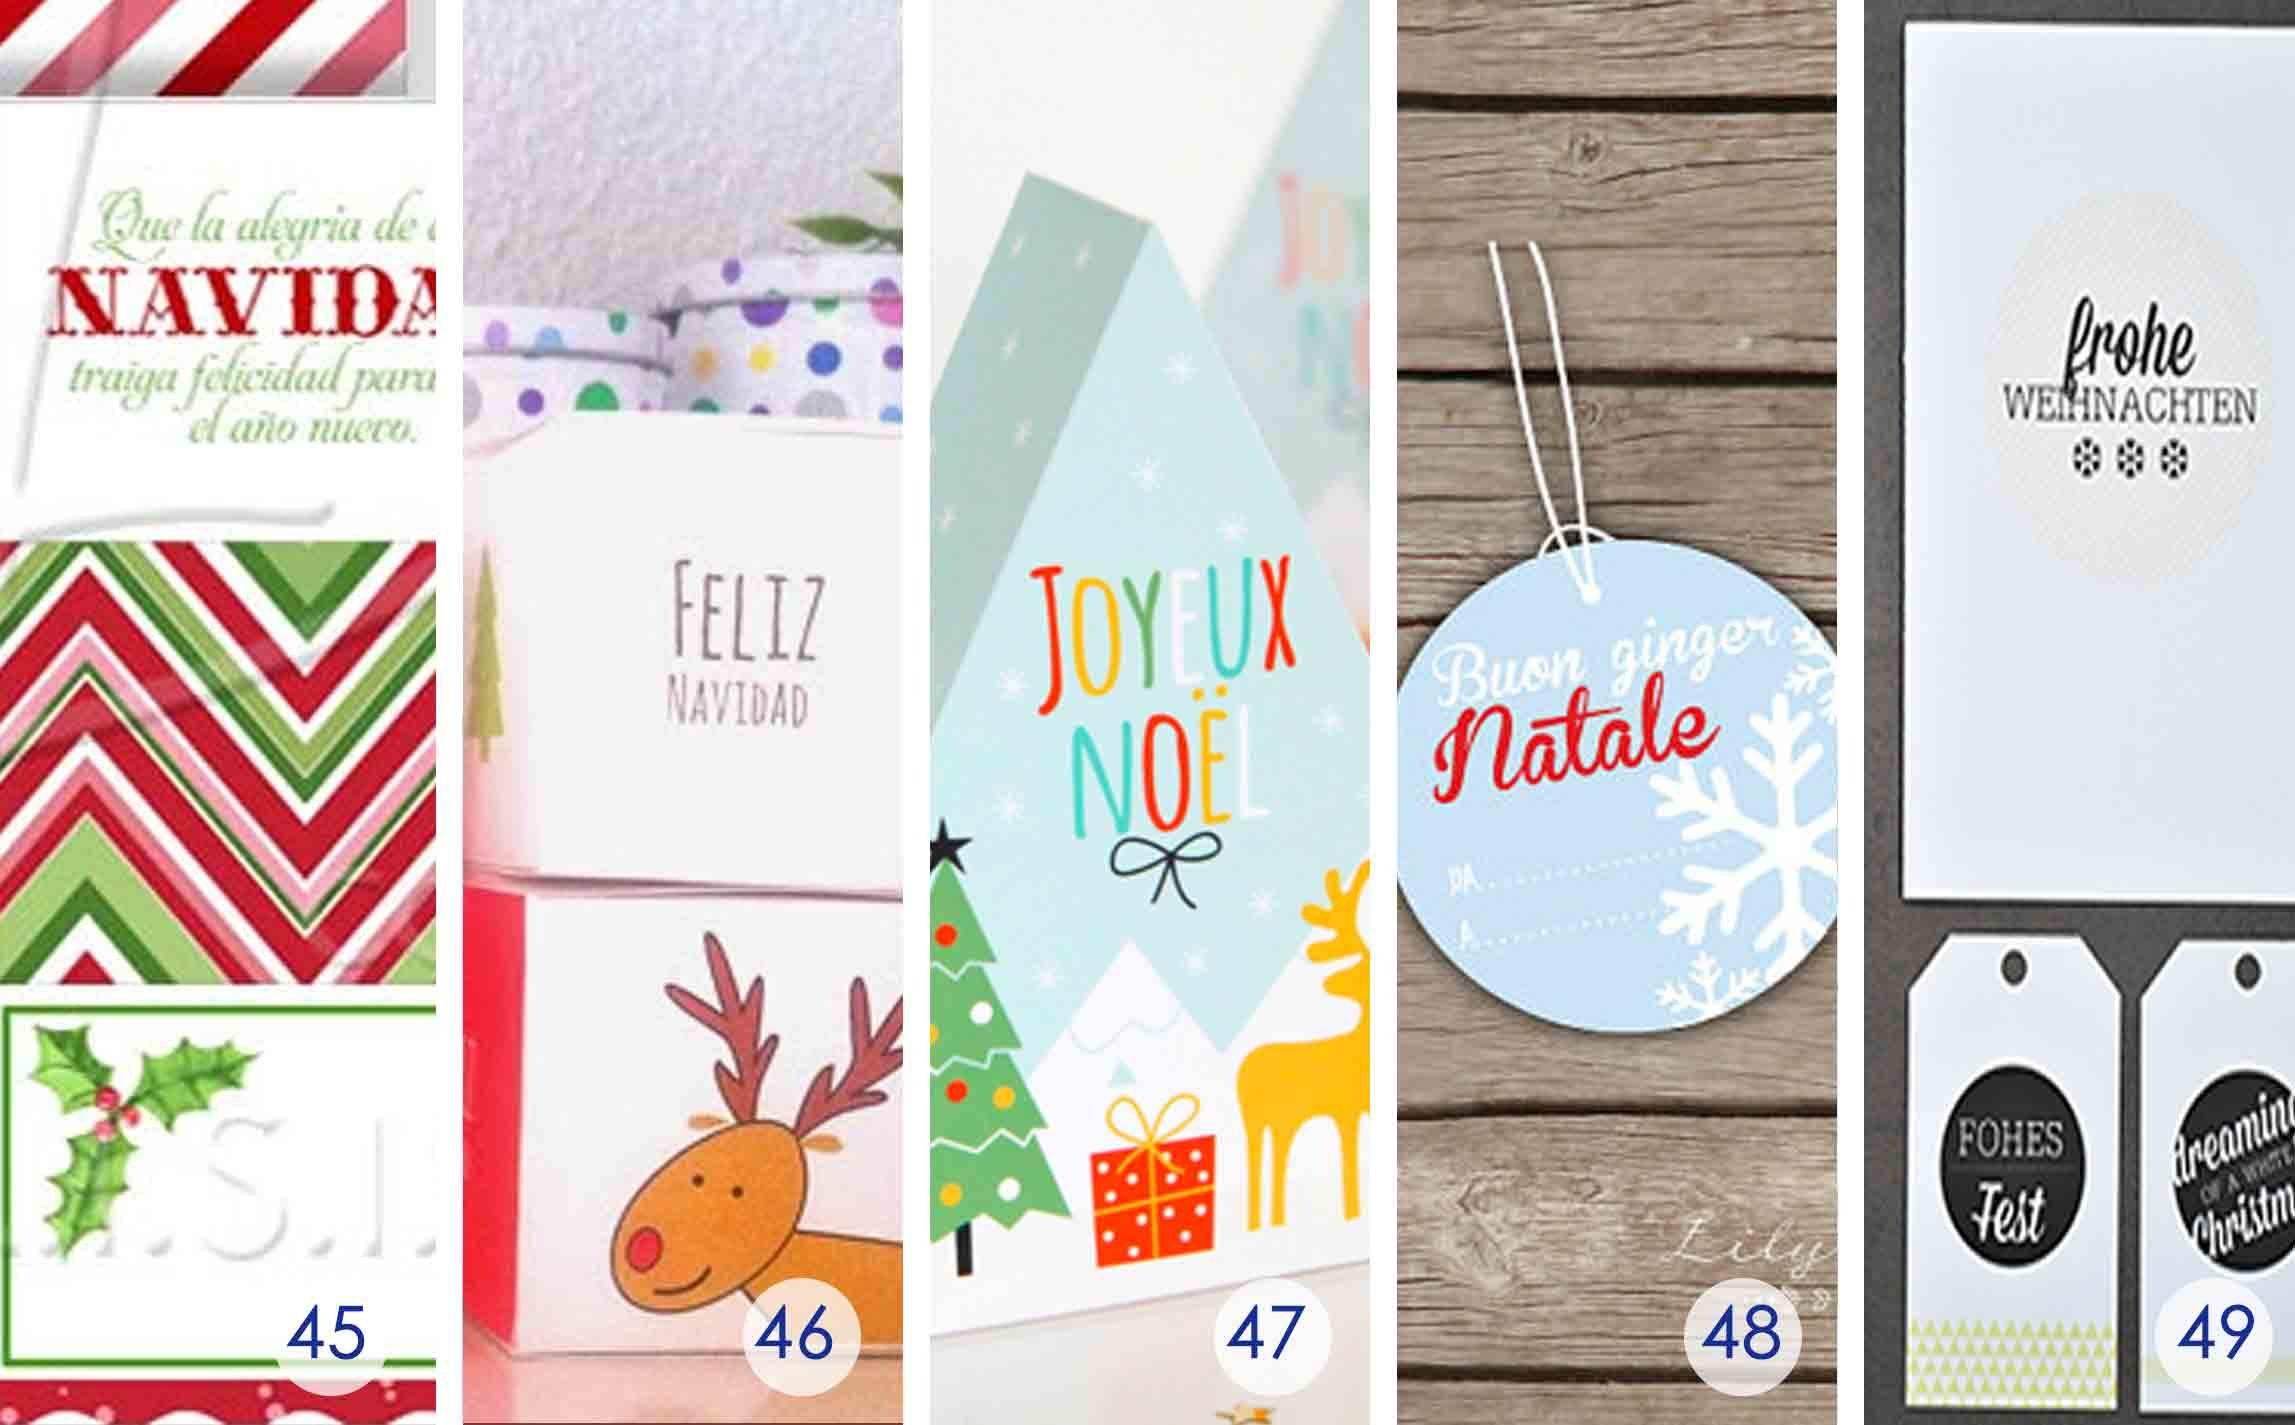 Over 50 Printable Gift Card Holders For The Holidays | Gcg - Free Printable Christmas Money Holder Cards